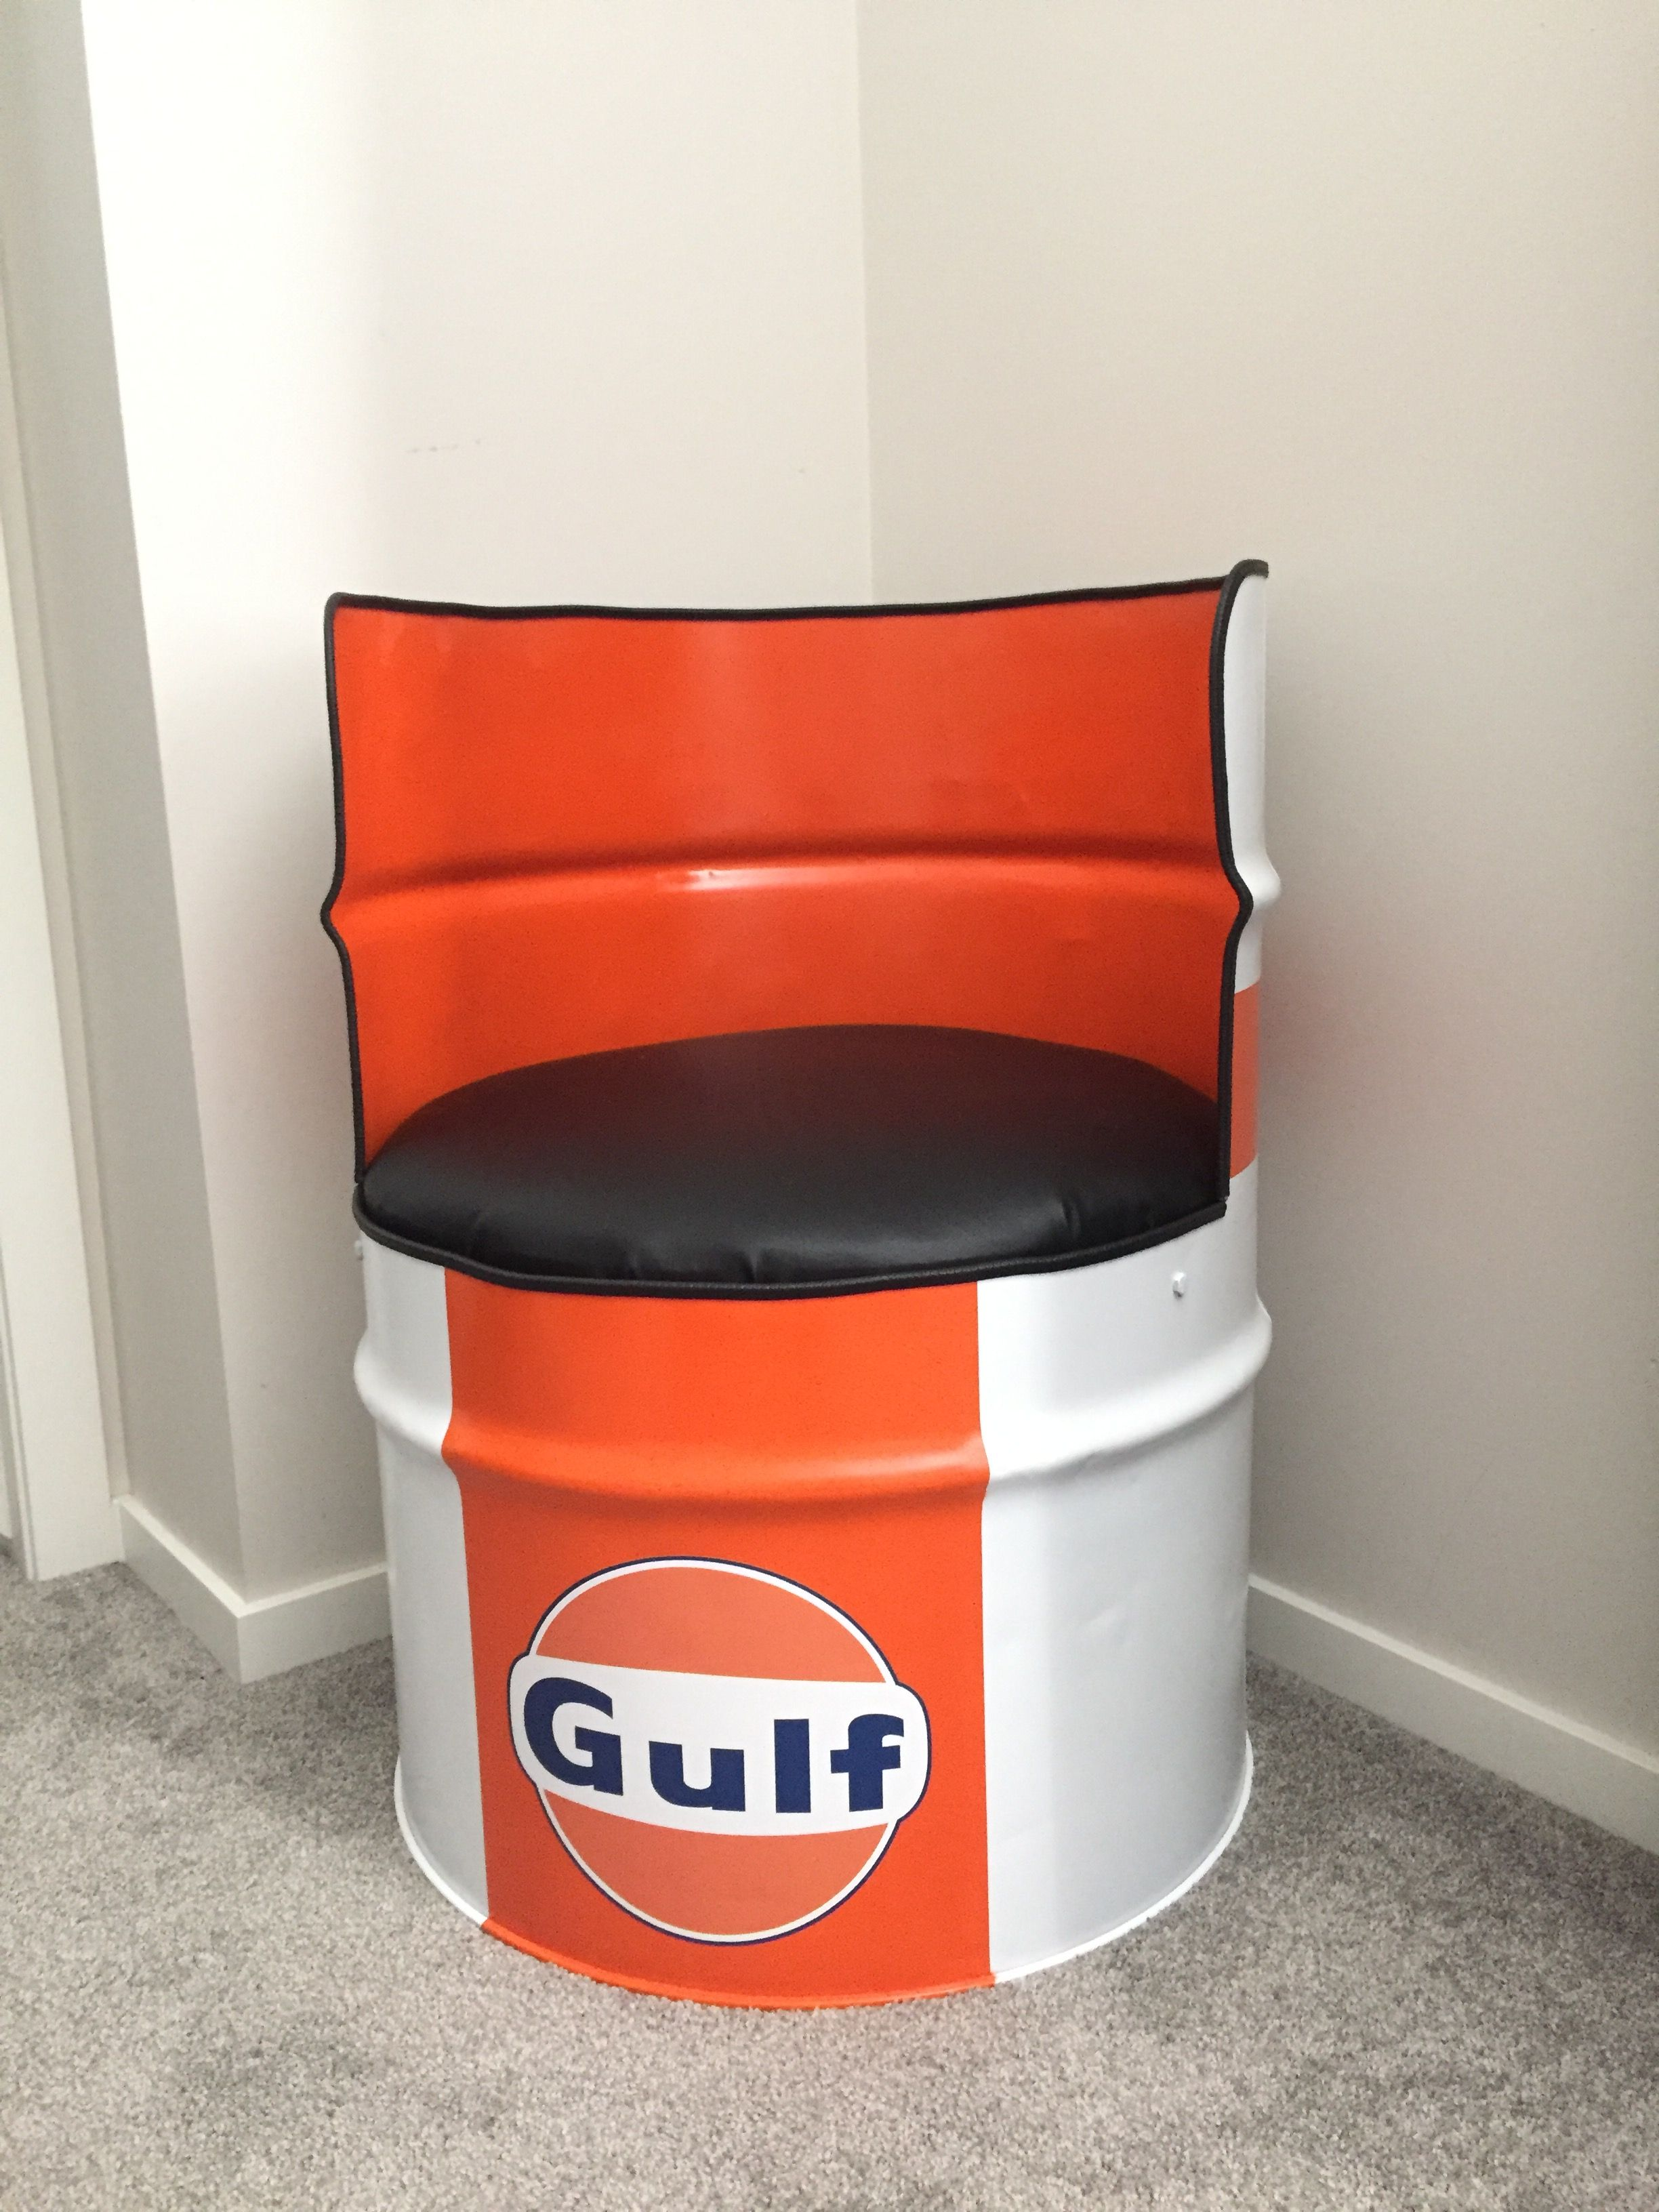 Bon 55 Gallon Drum Chair. I Just Finished Making It! I Love How It Turned Out!